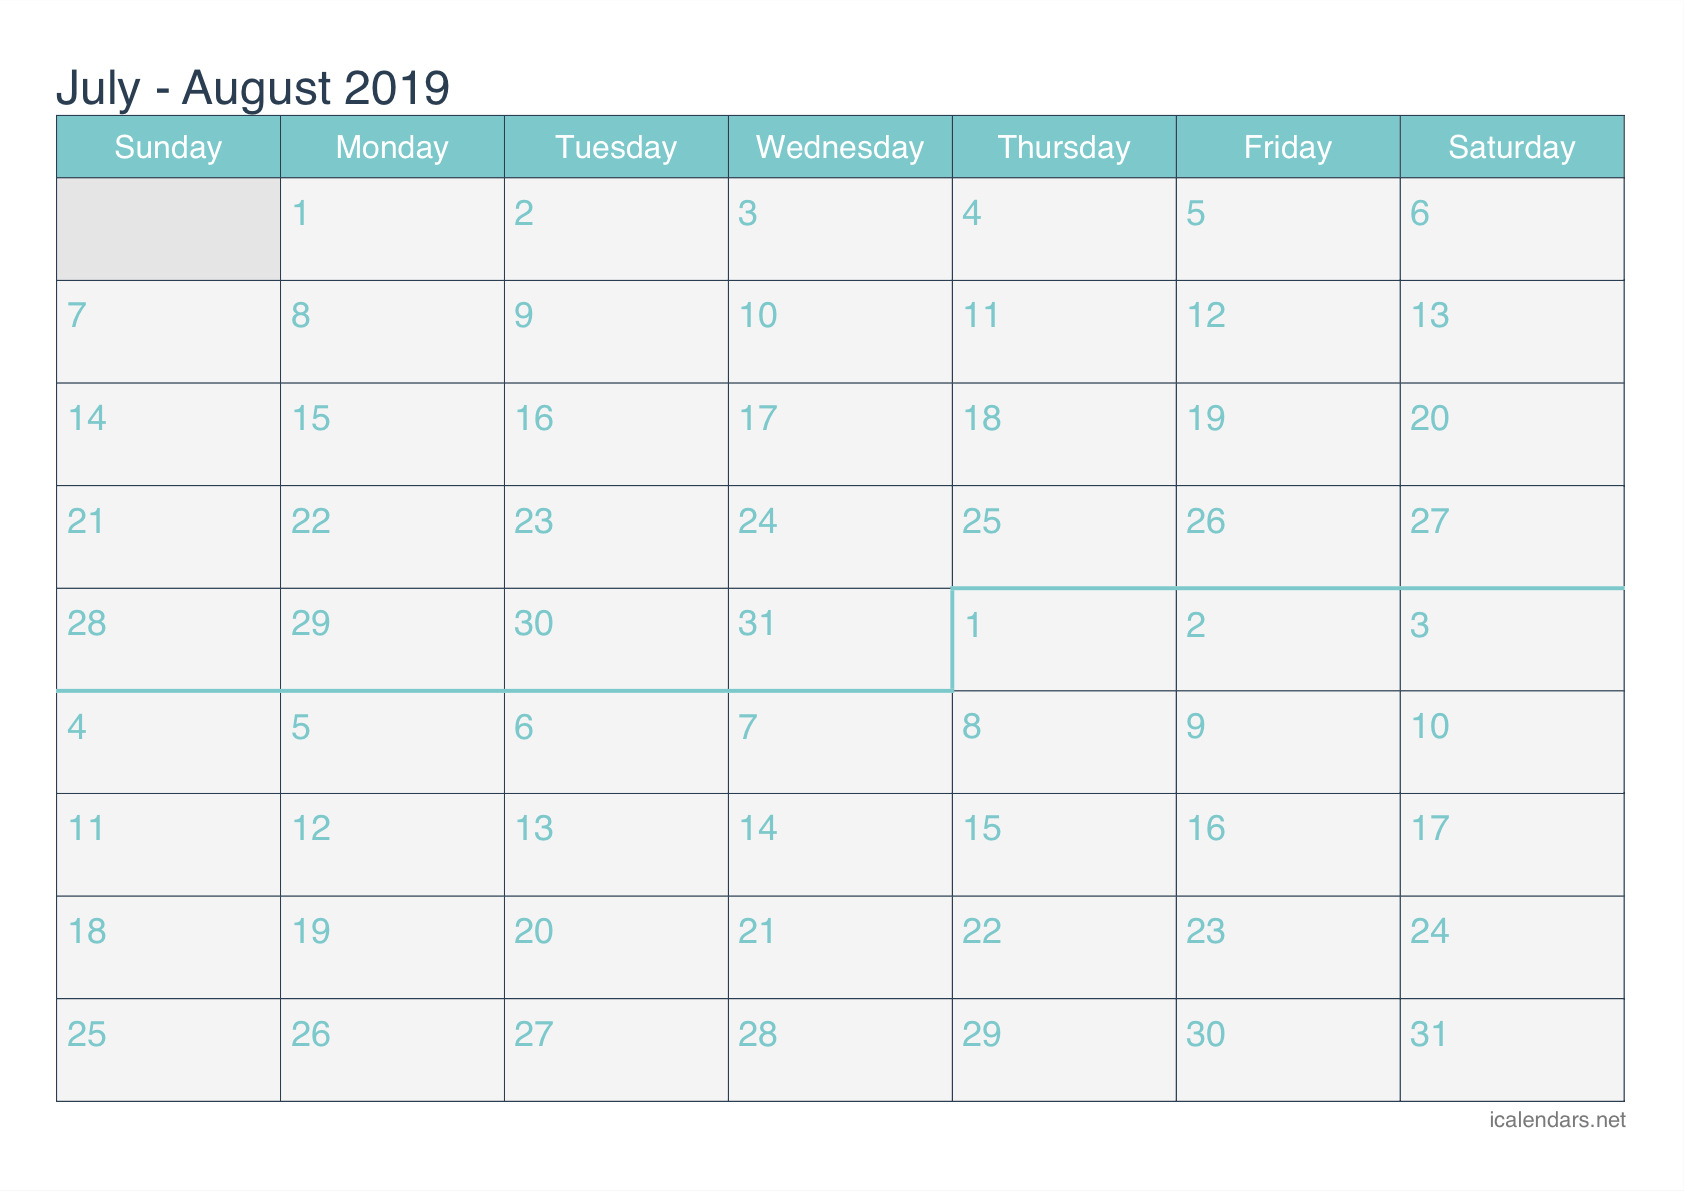 July And August 2019 Printable Calendar - Icalendars Calendar 2019 July